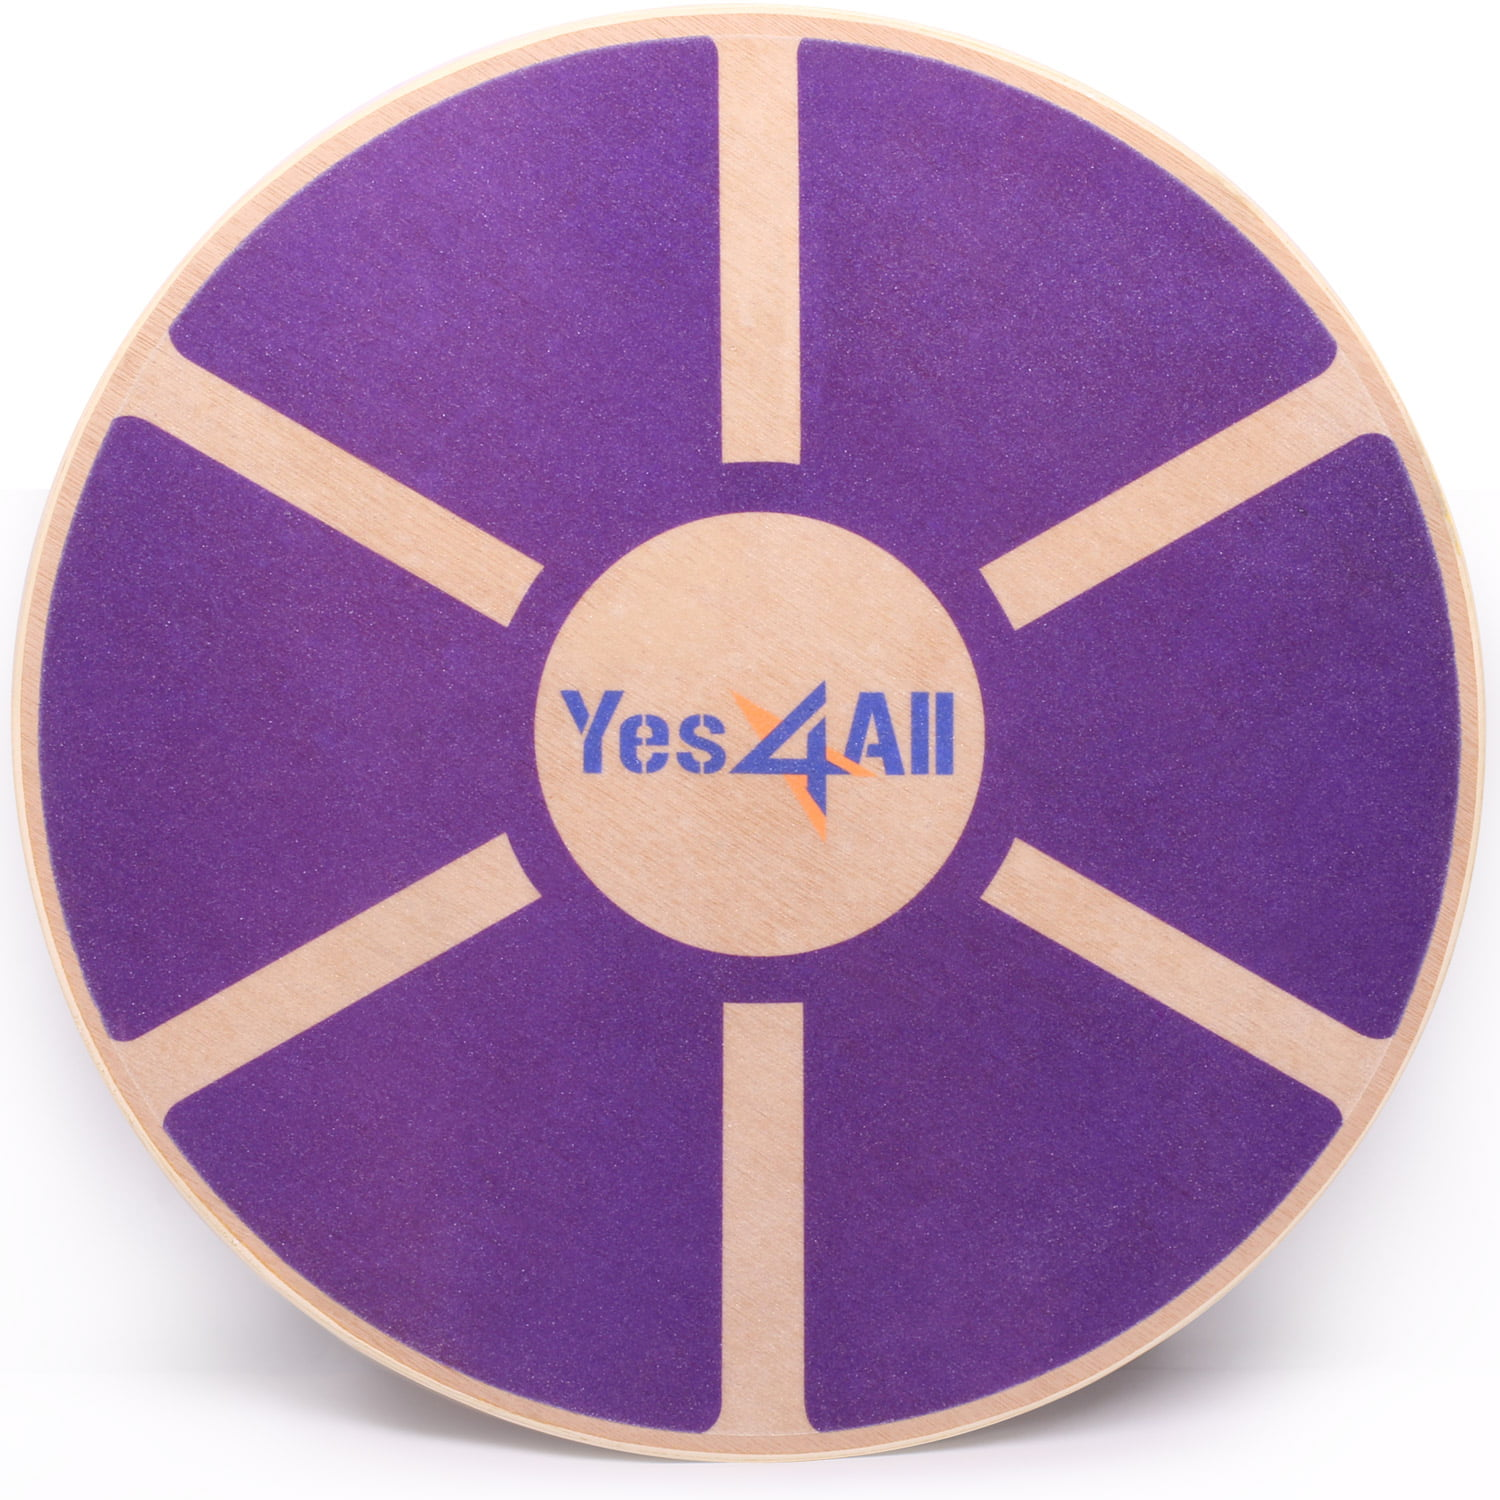 Yes4All Wooden Wobble Balance Board � Exercise Balance Trainer (15.75-inch Diameter) by Supplier Generic